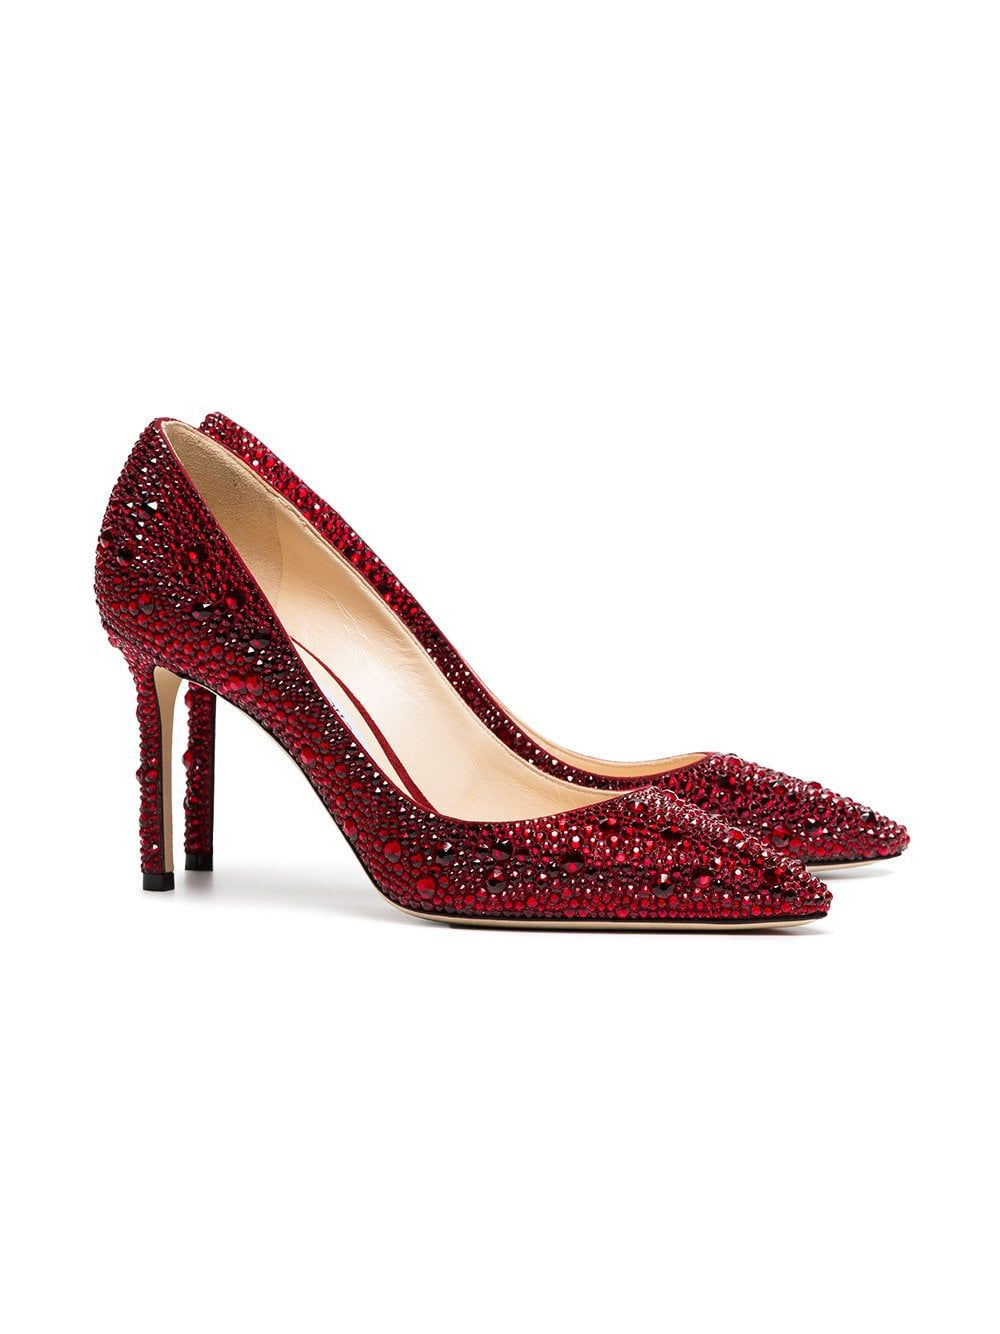 32a81fd3d9ad Jimmy Choo Red Romy 85 Crystal Pumps in 2019